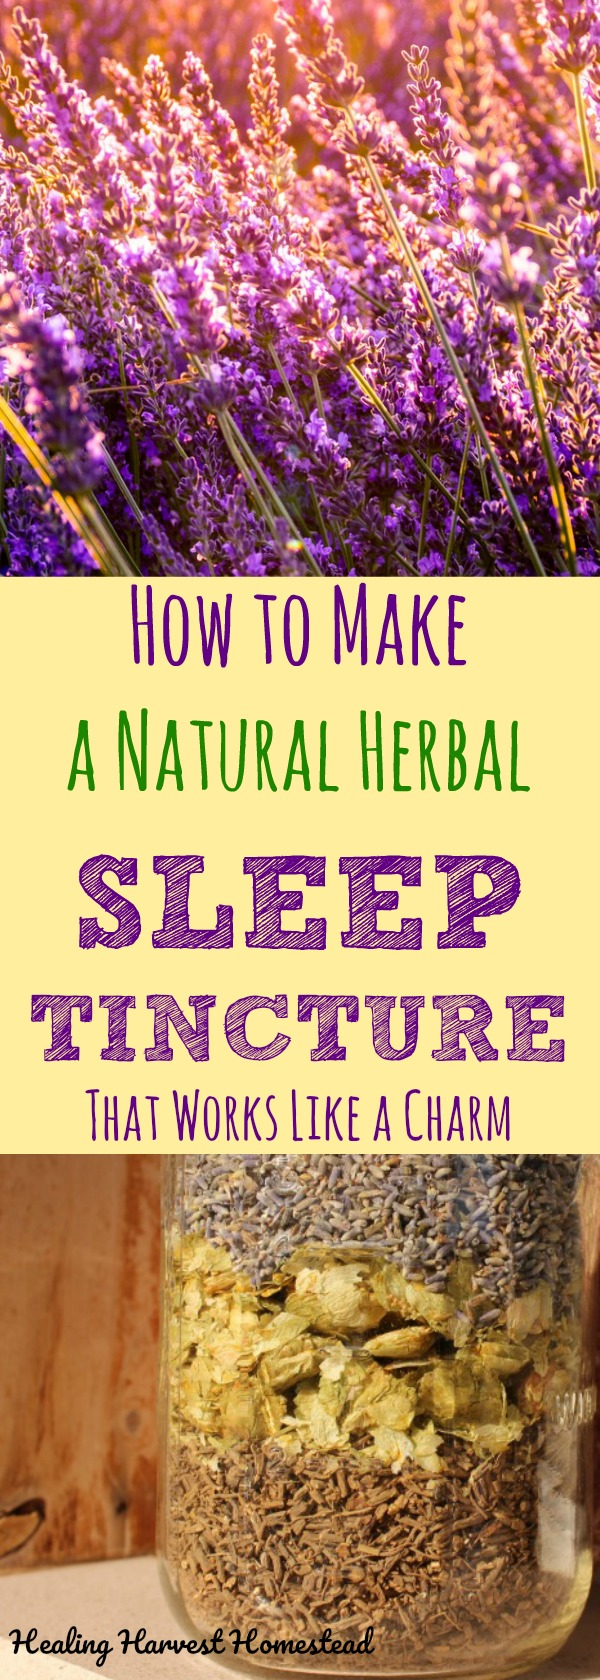 Getting a great night's sleep is difficult for many people these days. Here are scientifically studied herbs that can help you get that restful sleep you've dreamed of! This herbal remedy and recipe blend is easy to make, and best of all, it works! #sleep #beauty #cant #tips #herbsfor #essentialoilsfor #howto #goodnight #healingharvesthomestead #herbalremedy #herbalist #naturalremedy